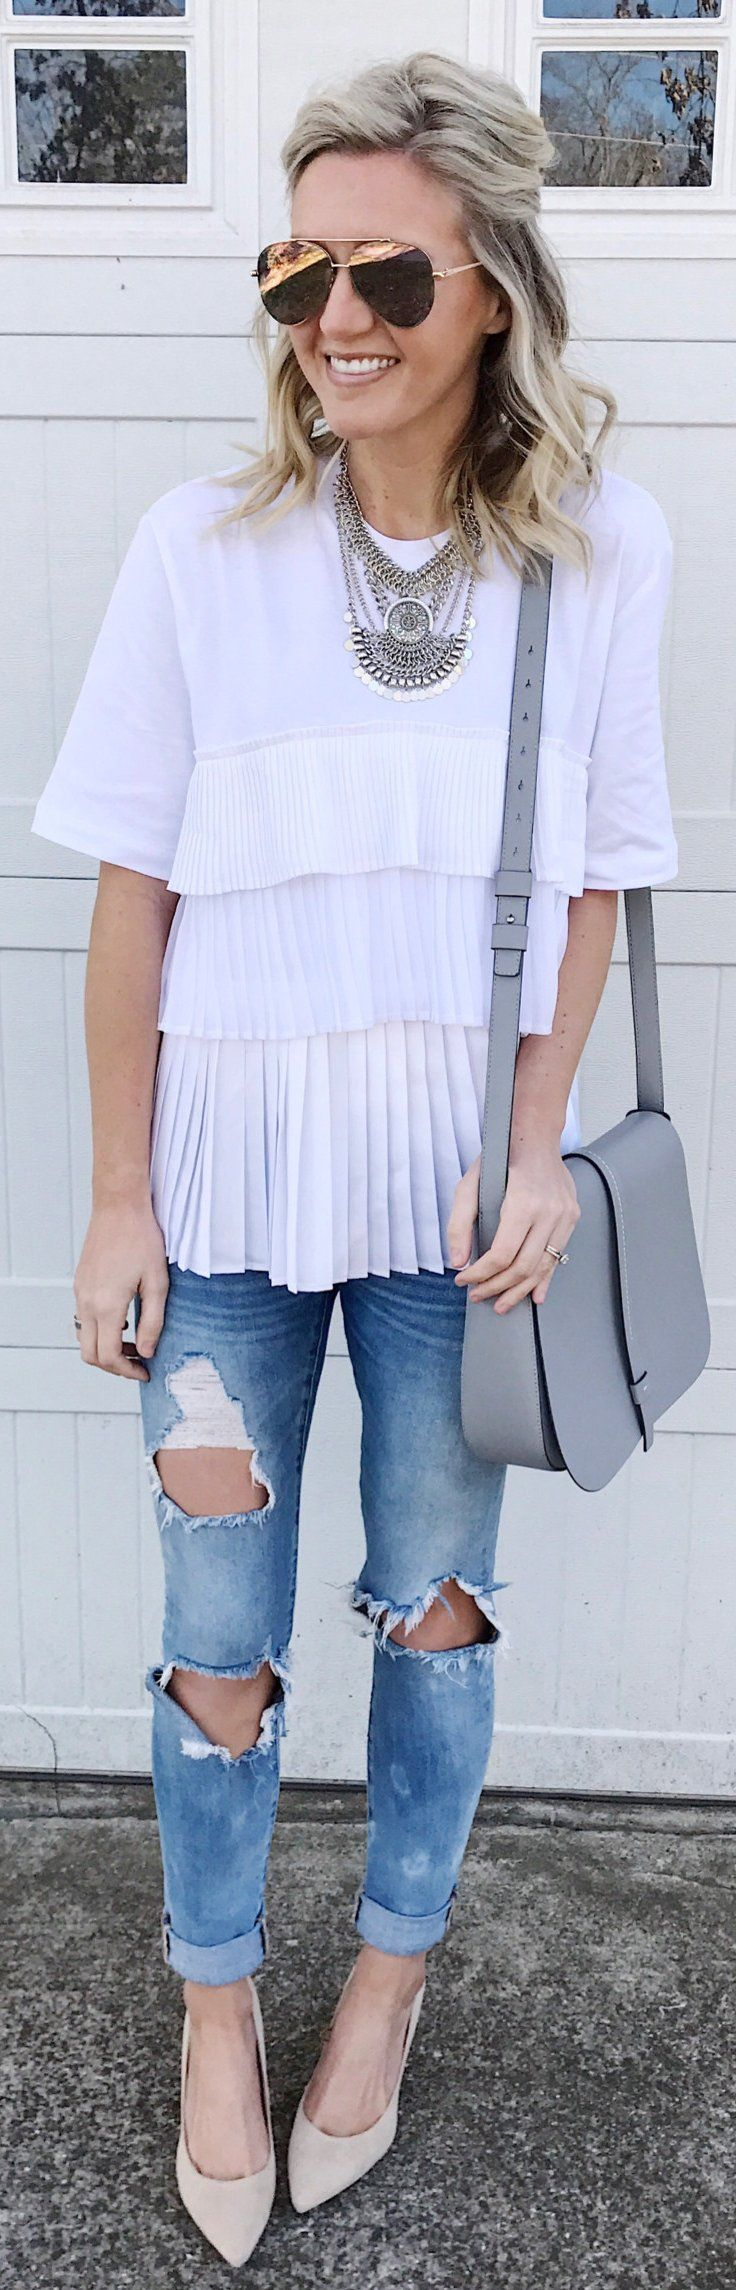 White Top / Grey Leather Shoulder Bag / Destroyed Skinny Jeans / Beige Pumps